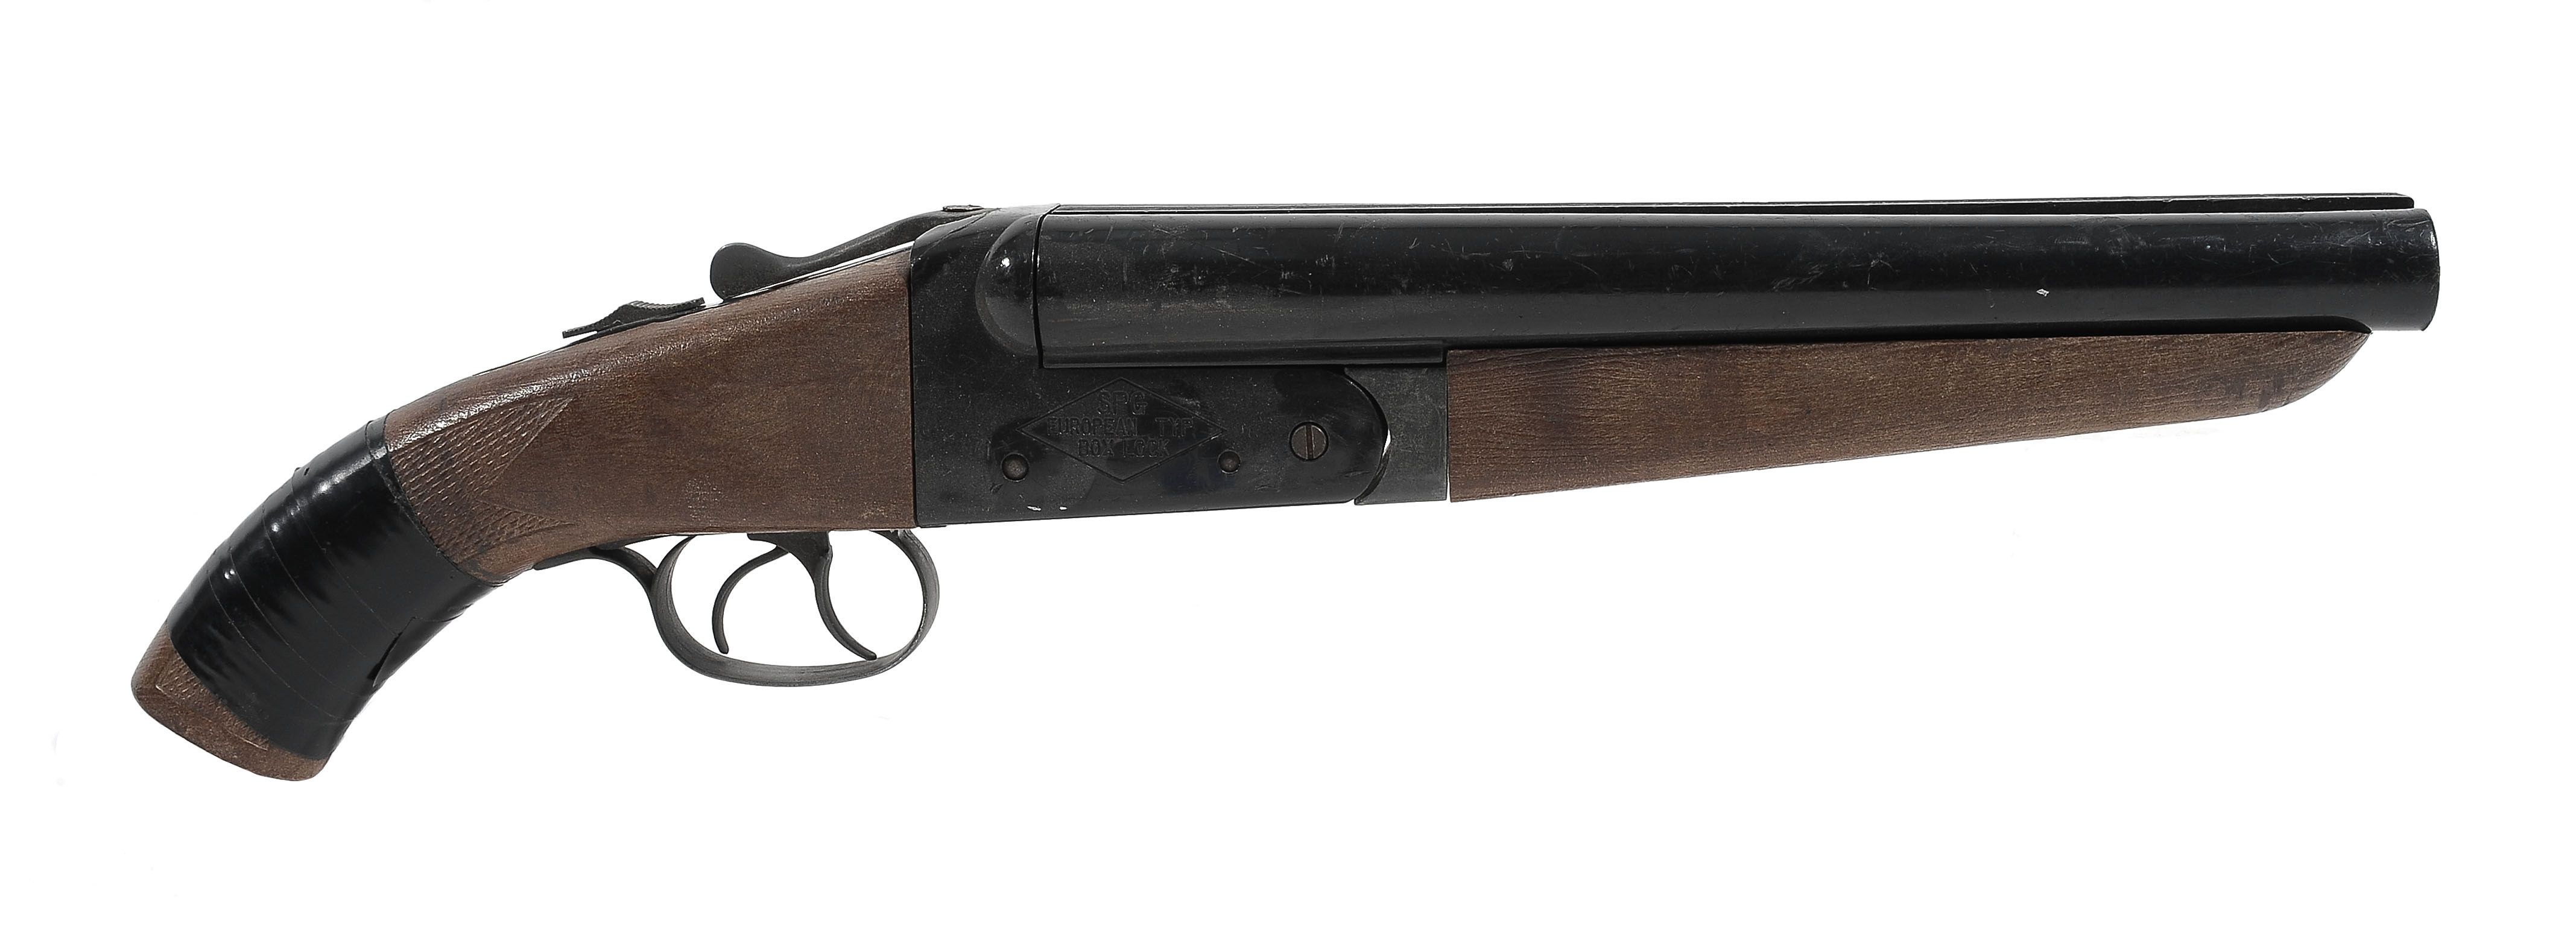 A double-barreled shotgun is a shotgun with two parallel barrels, allowing two shots to be fired in quick succession. Description from pixgood.com. I searched for this on bing.com/images